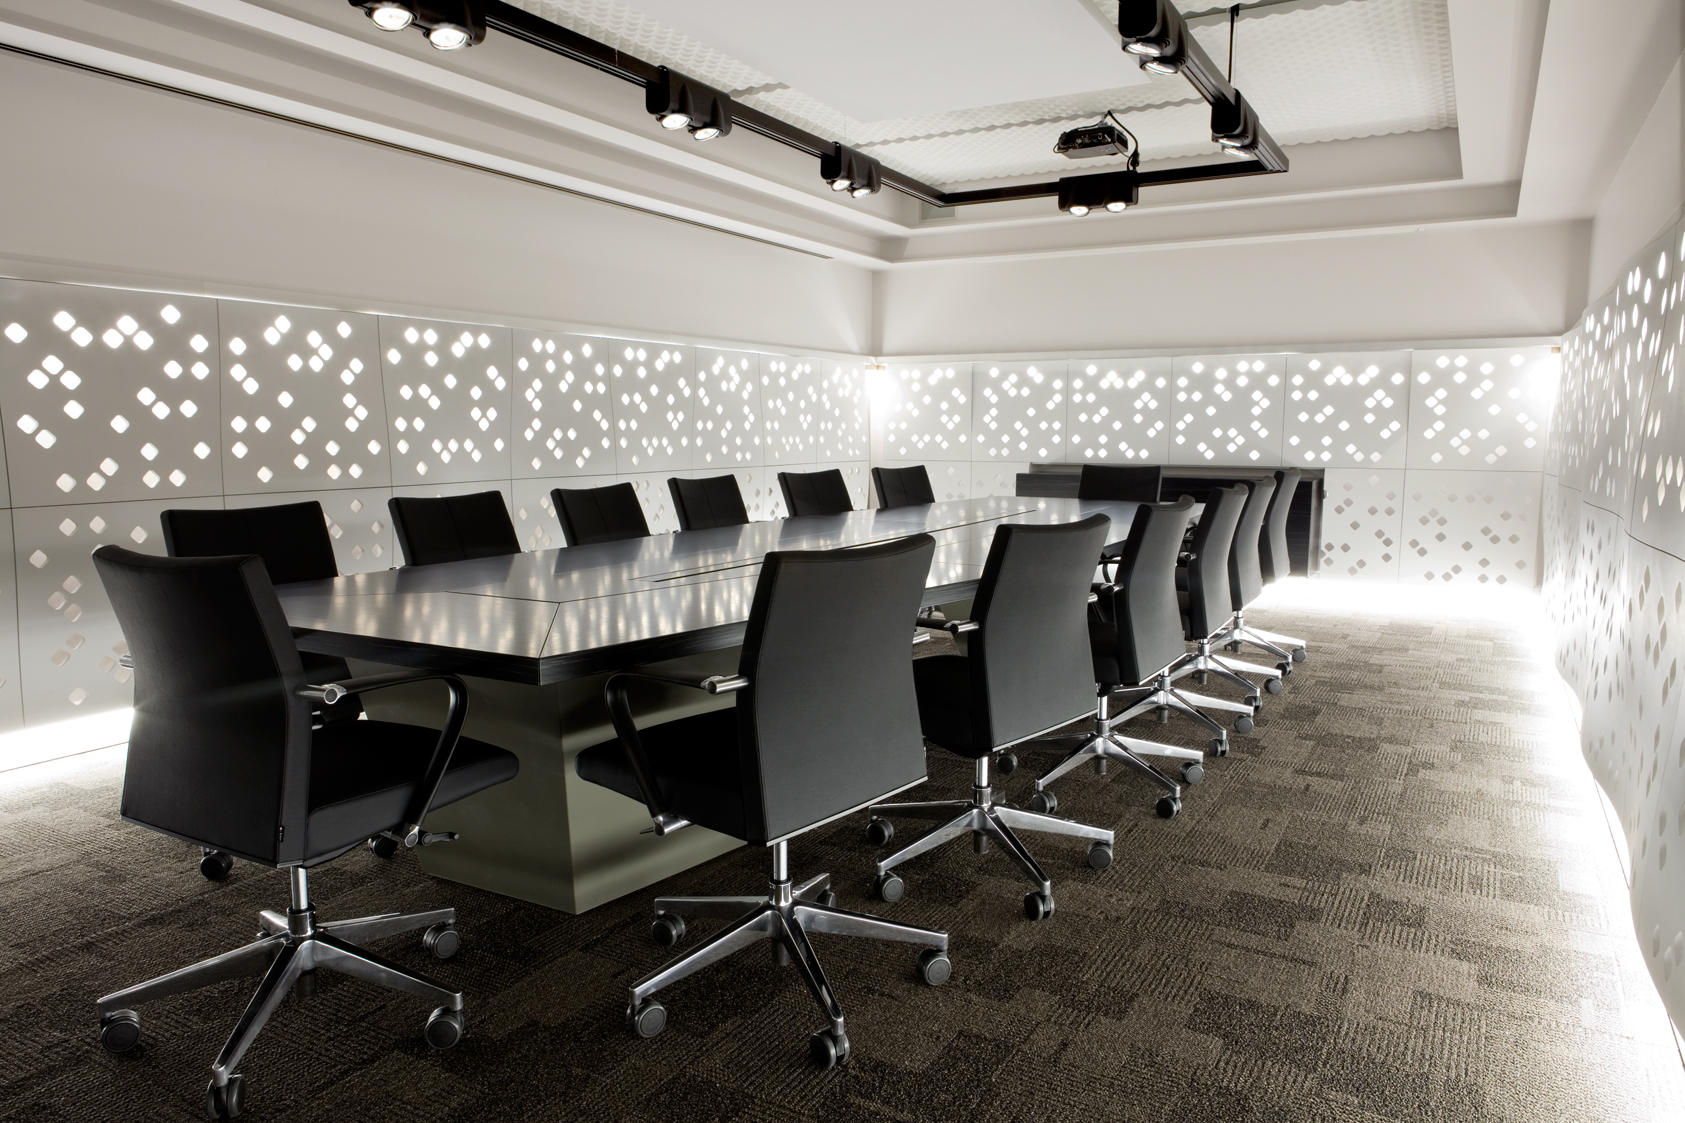 Daybooking conference rooms the future of meetings for Office room layout